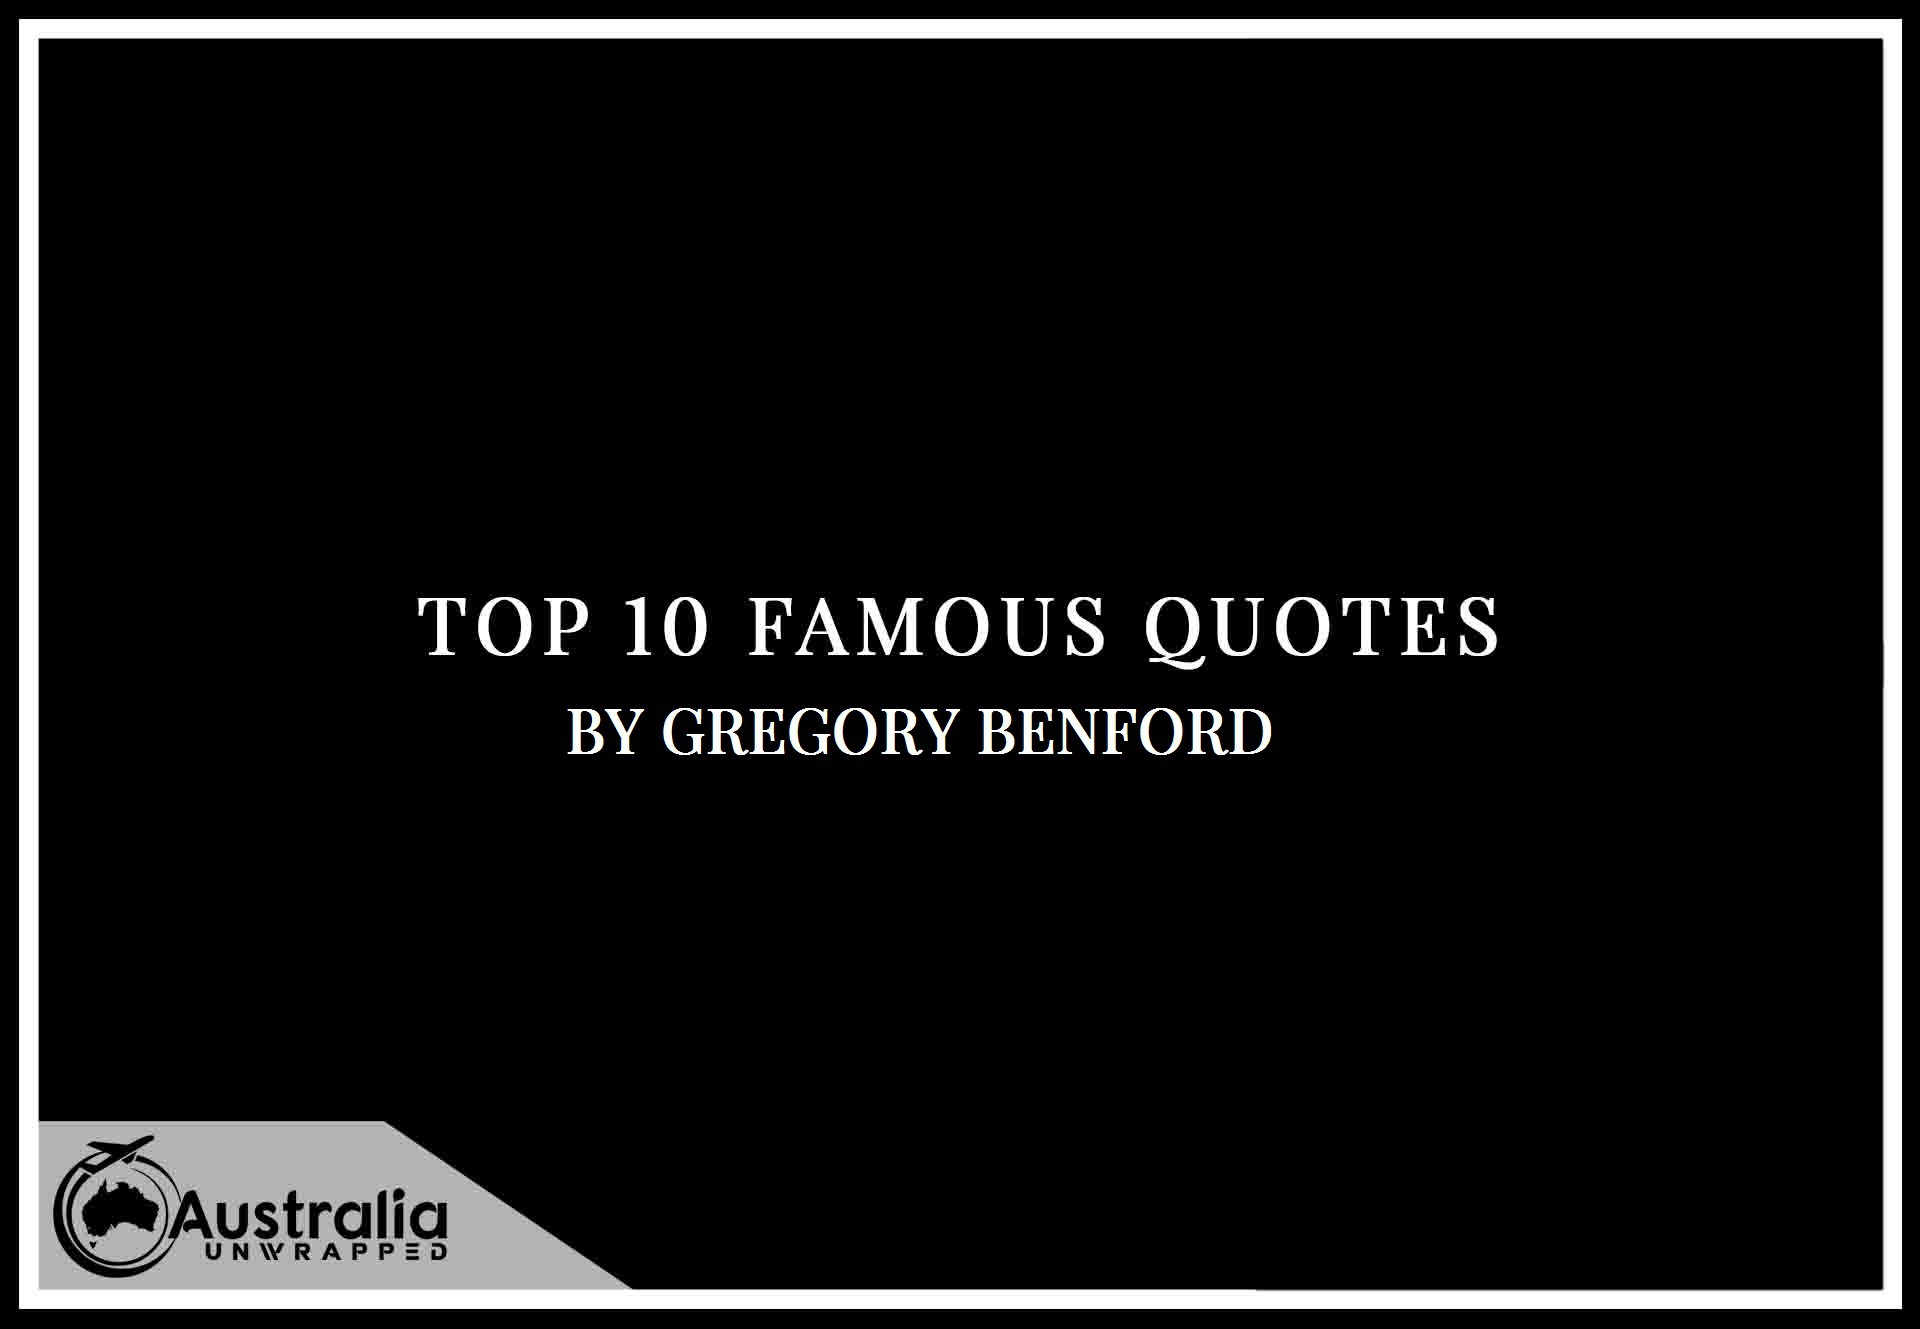 Gregory Benford's Top 10 Popular and Famous Quotes